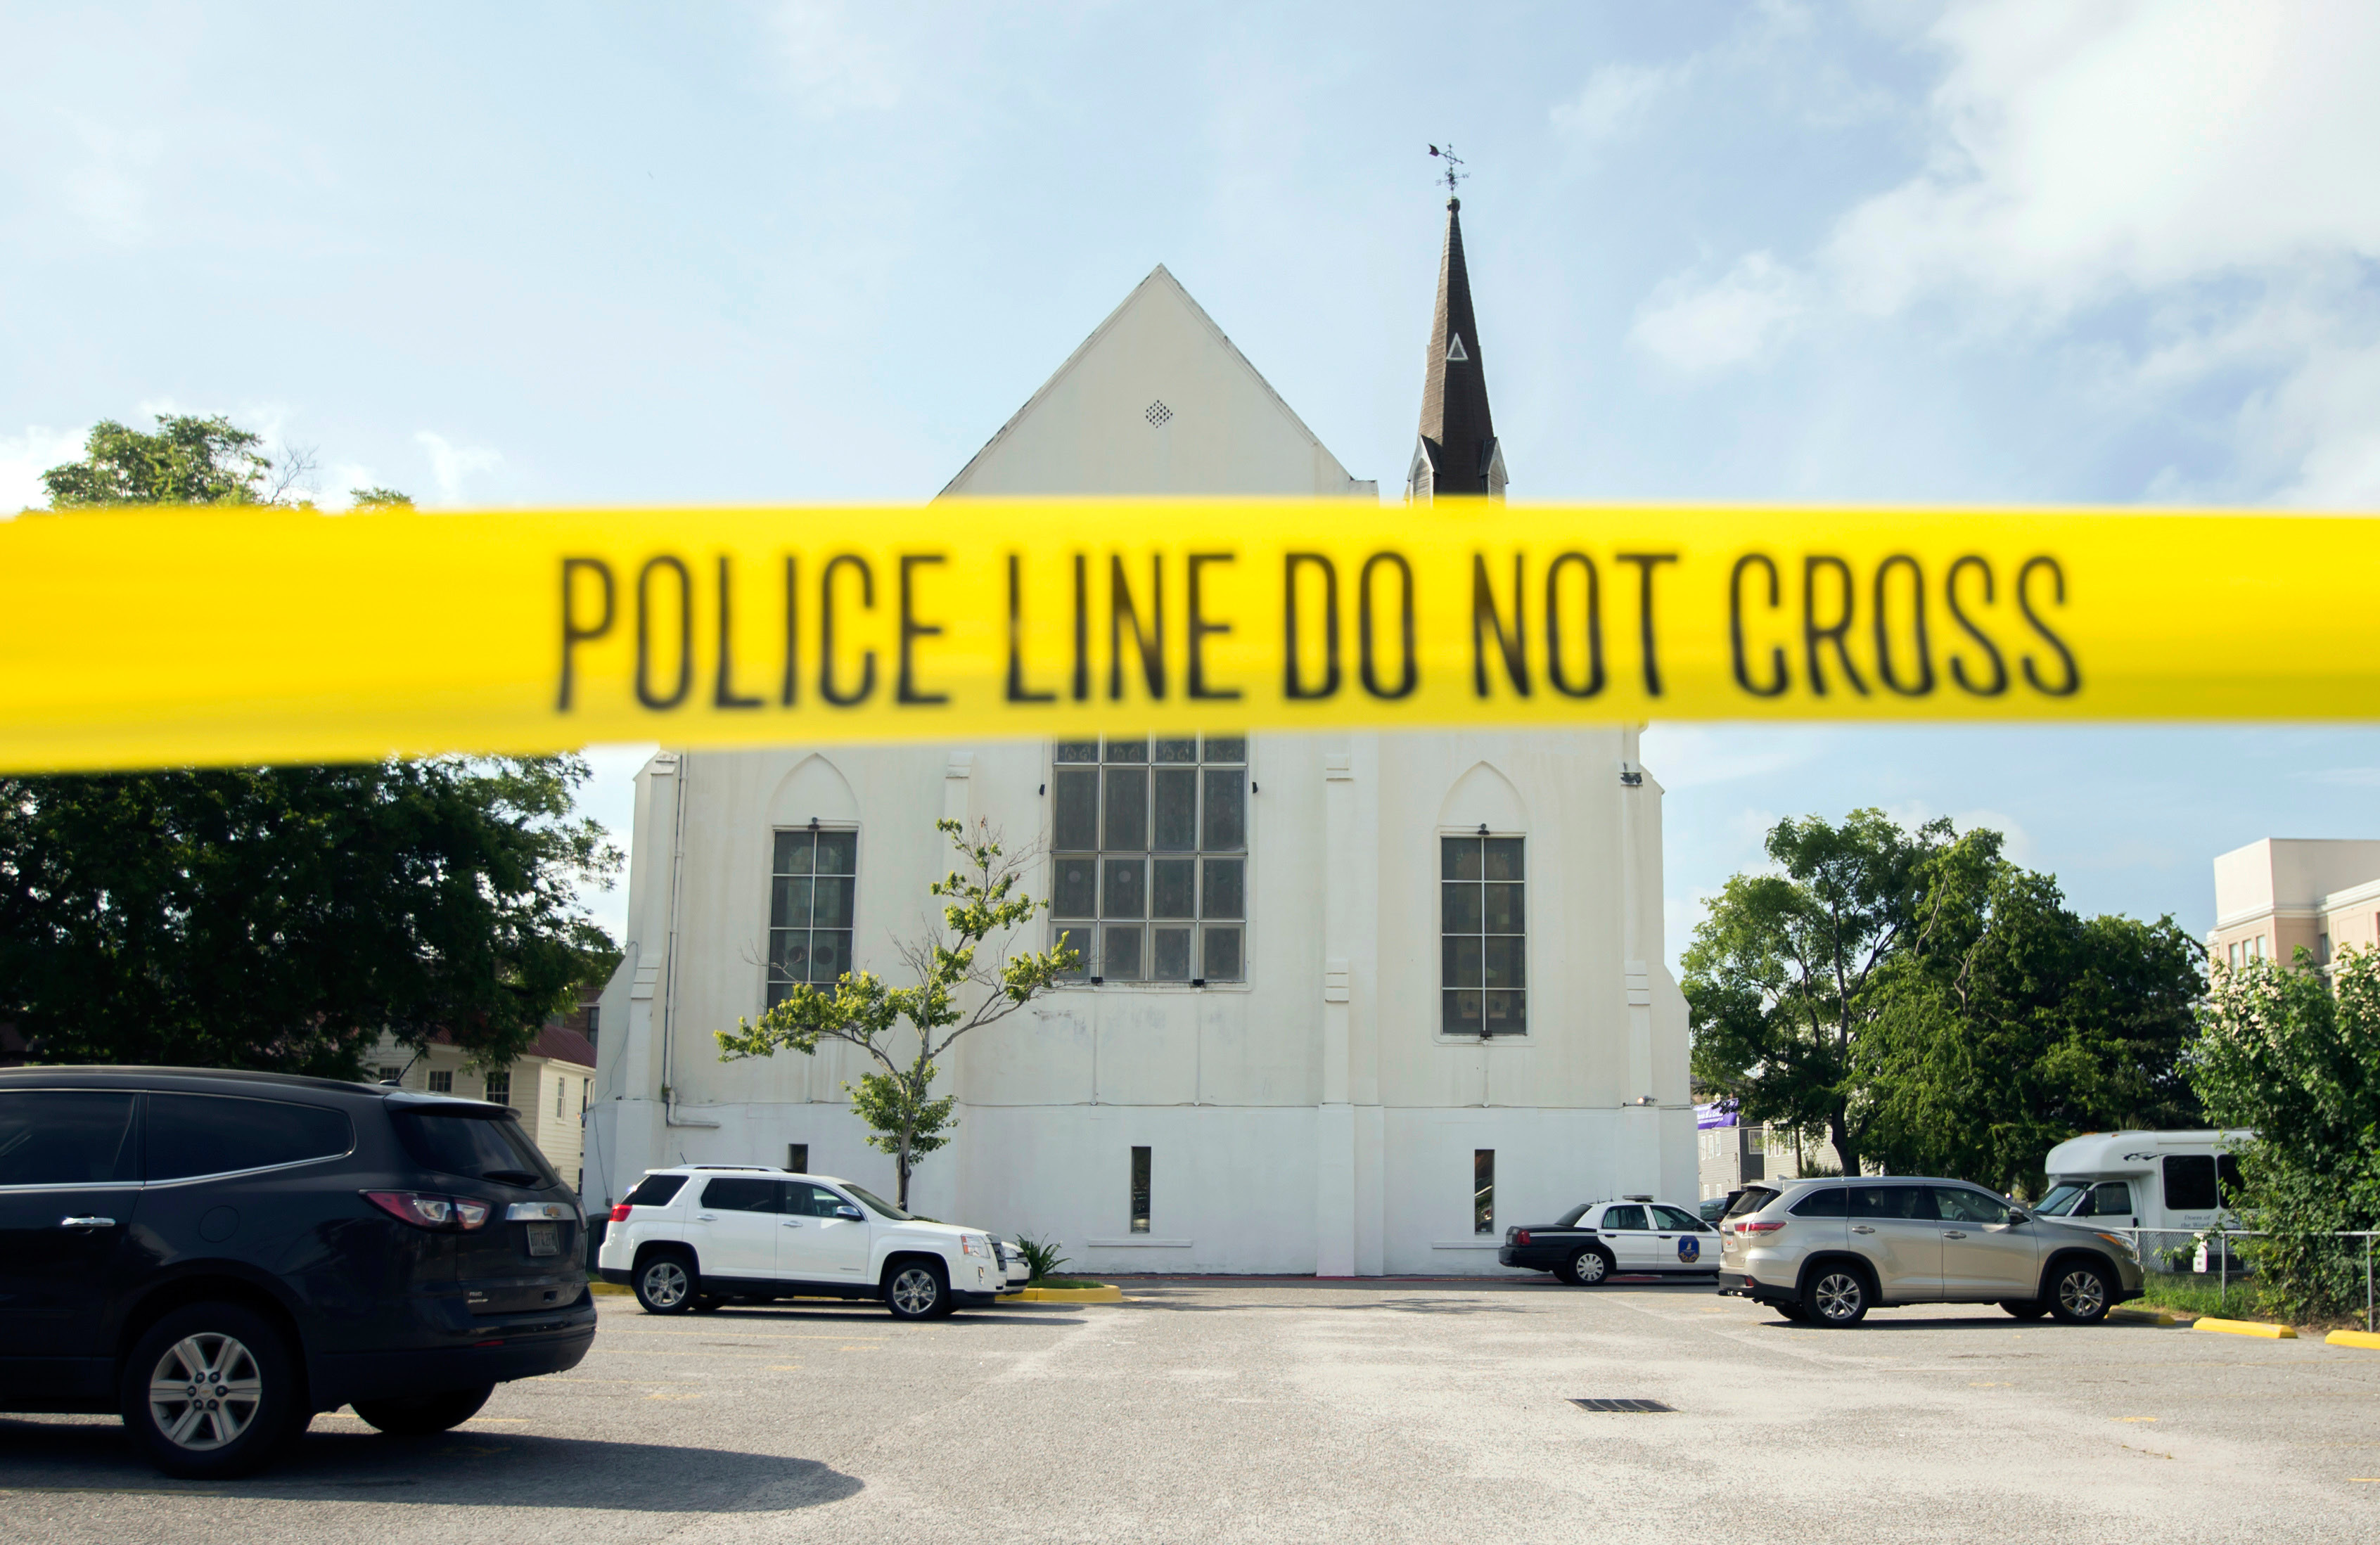 FILE - In this June 19, 2015 file photo, police tape surrounds the parking lot behind the AME Emanuel Church as FBI forensic experts work the crime scene, in Charleston, S.C. Prosecutors who wanted to show that Dylann Roof was a cruel, angry racist simply used his own words at his death penalty trial on charges he killed nine black people in June 2015 at a Charleston church. Roof